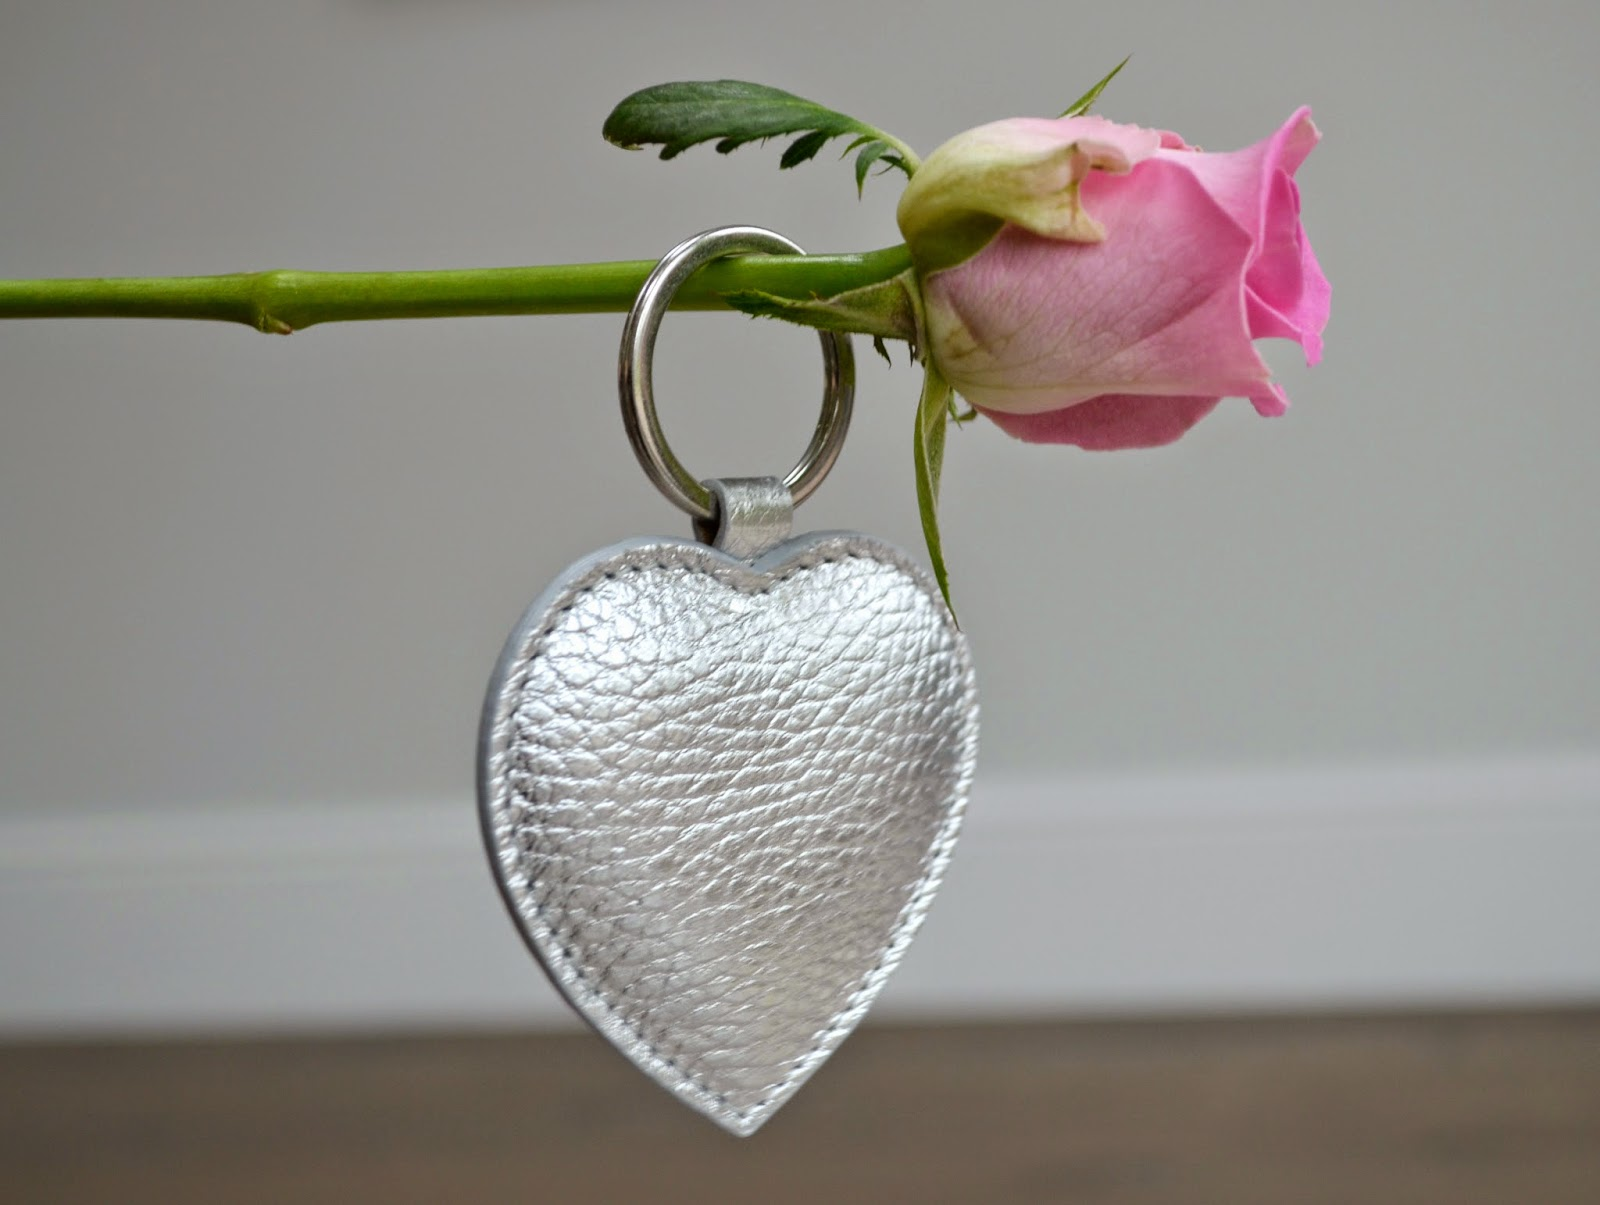 The White Company heart keyring